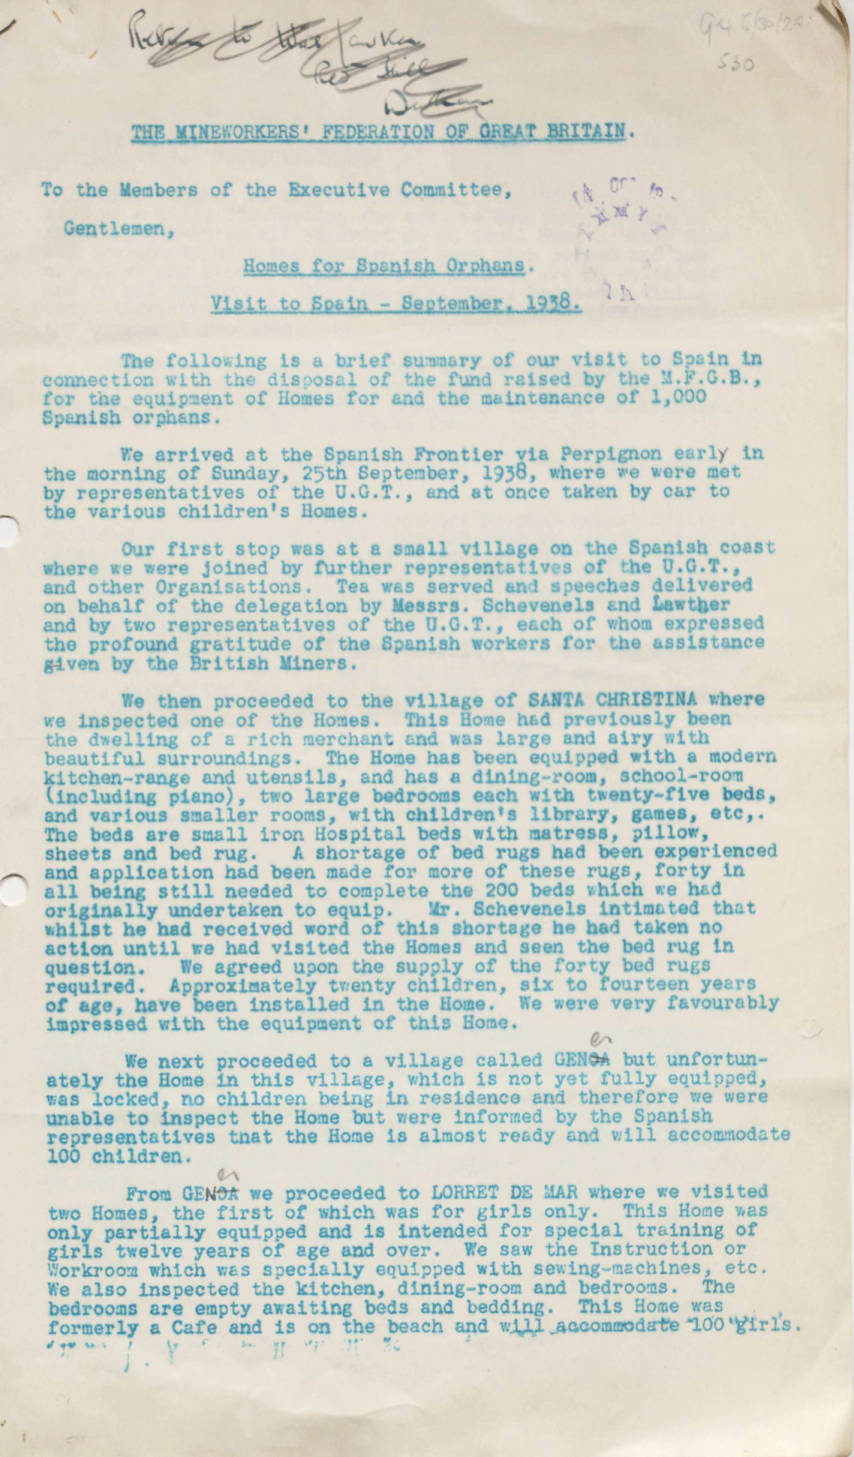 Homes for Spanish orphans: report of visit to Spain, September 1938 ...